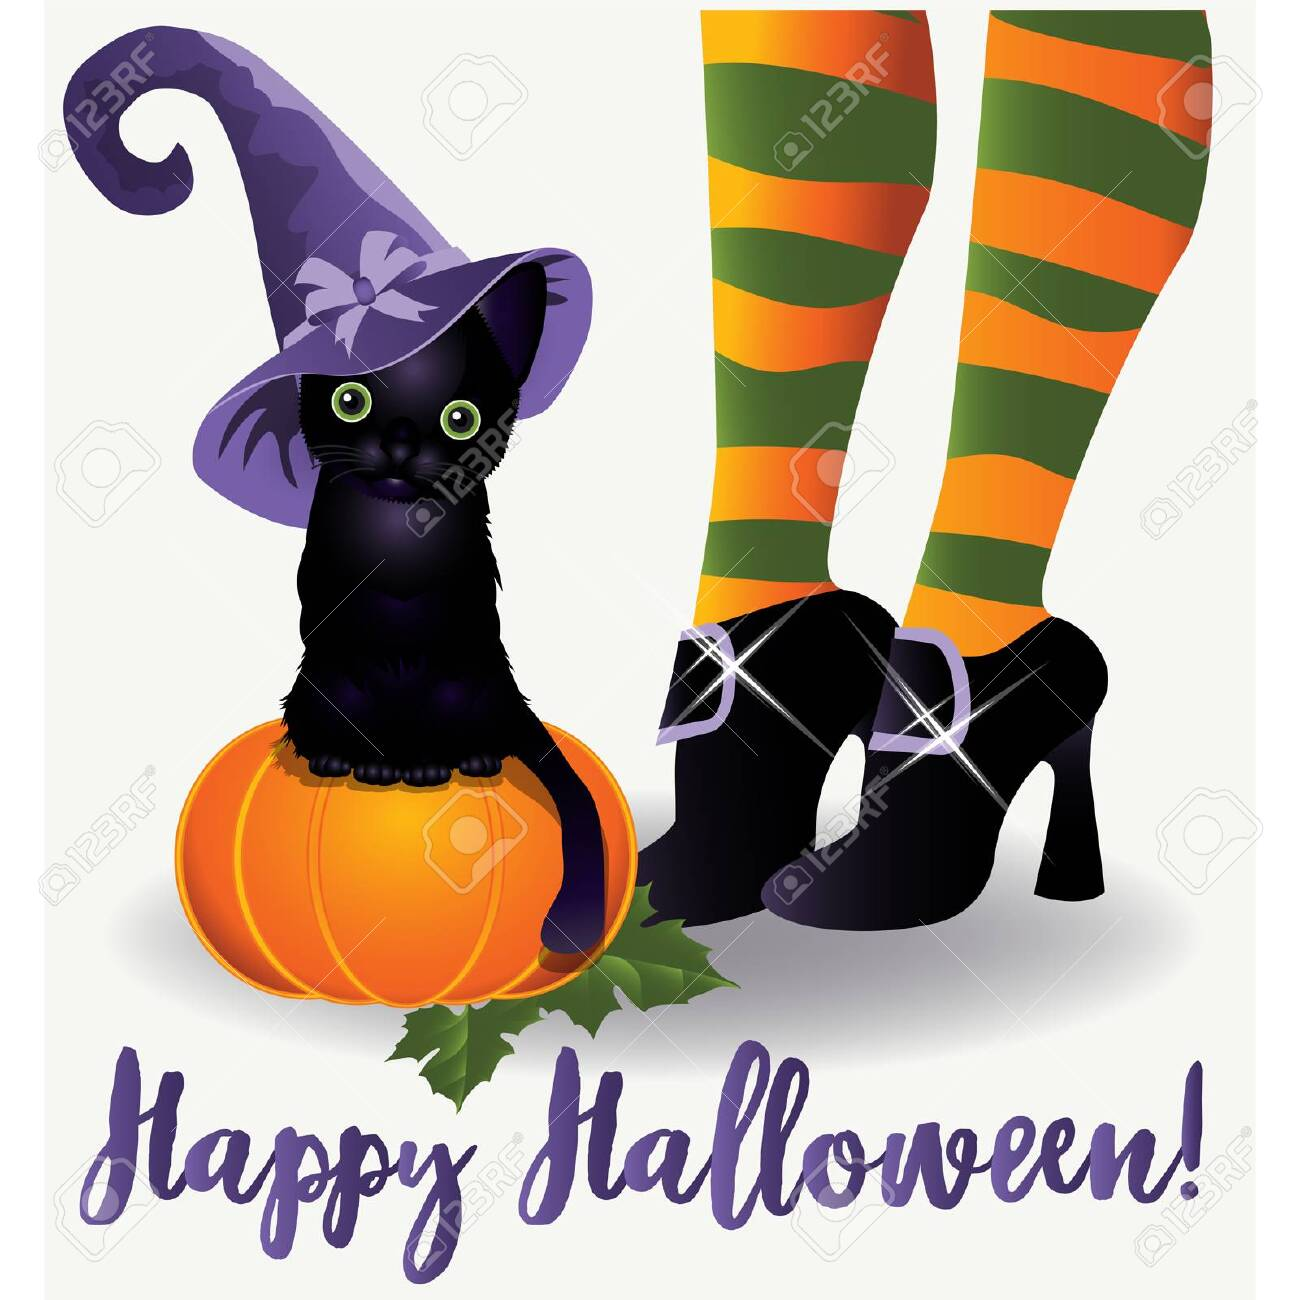 Happy Halloween Wallpaper Black Cat And Witch Vector